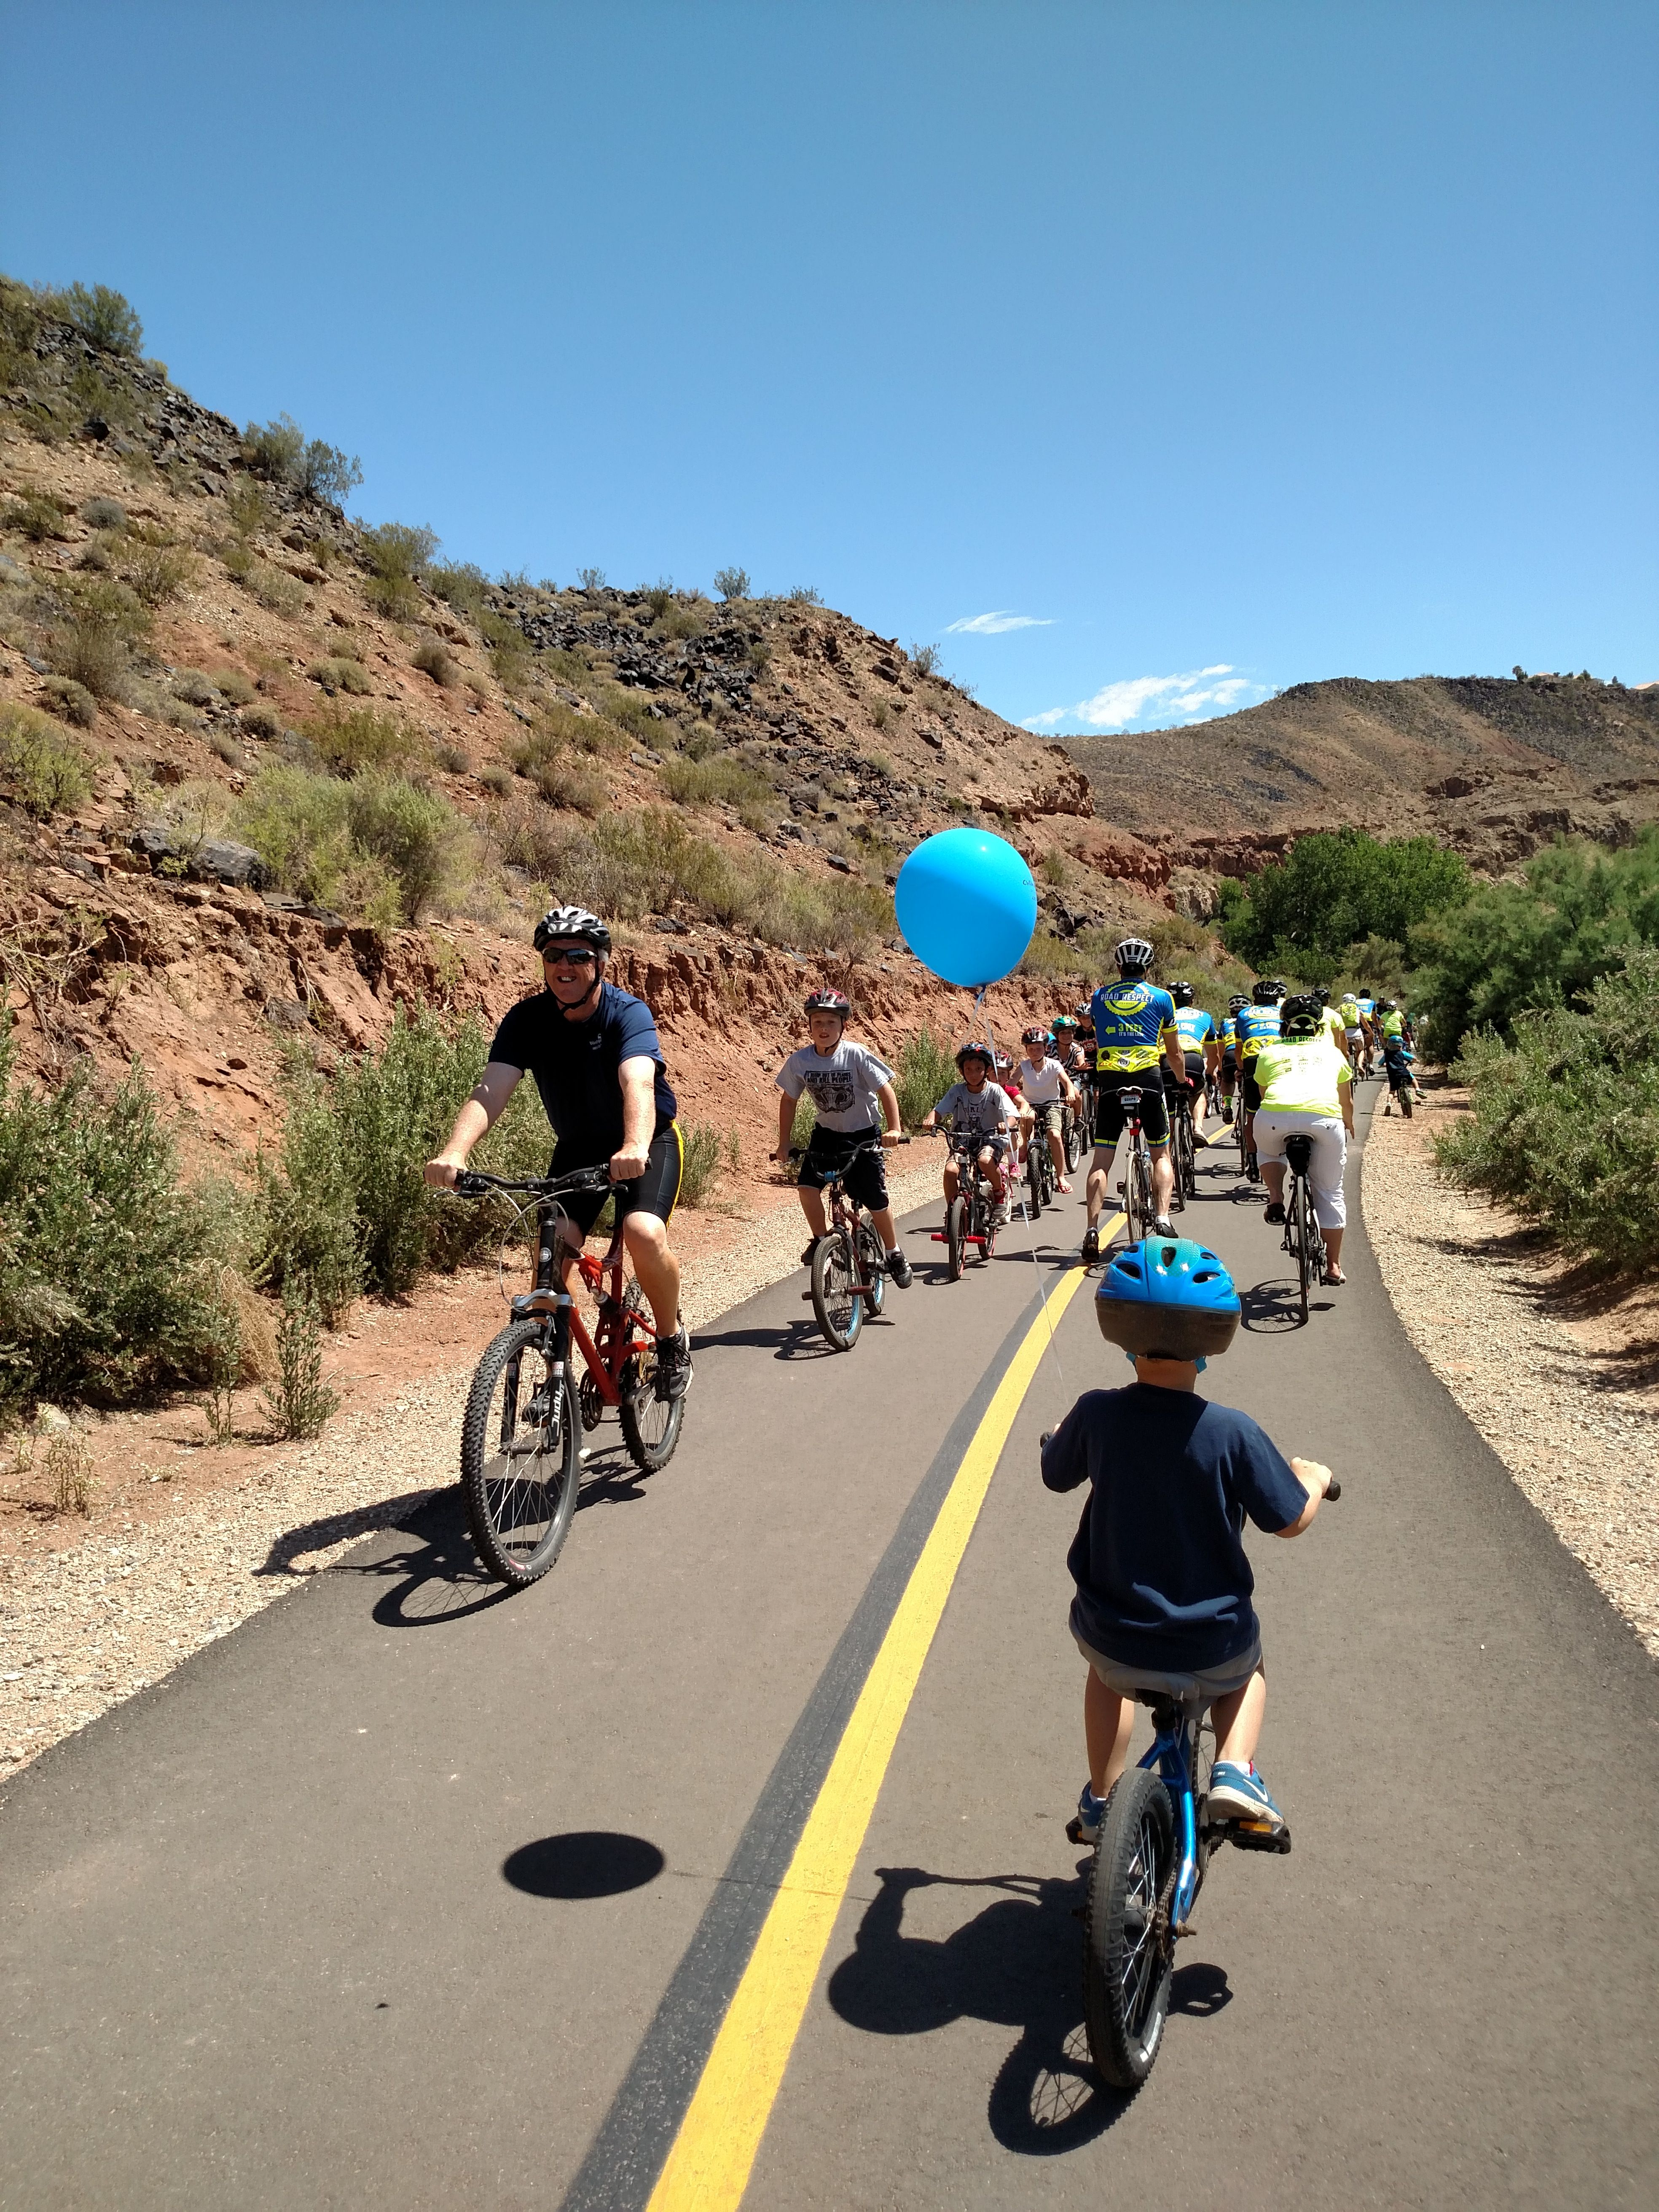 Washington City Mayor Ken Nielson leading the Road Respect kids' ride along the new Virgin River Boardwalk Trail, Washington, Utah, Date not given | Photo courtesy of Kai Reed, St. George News